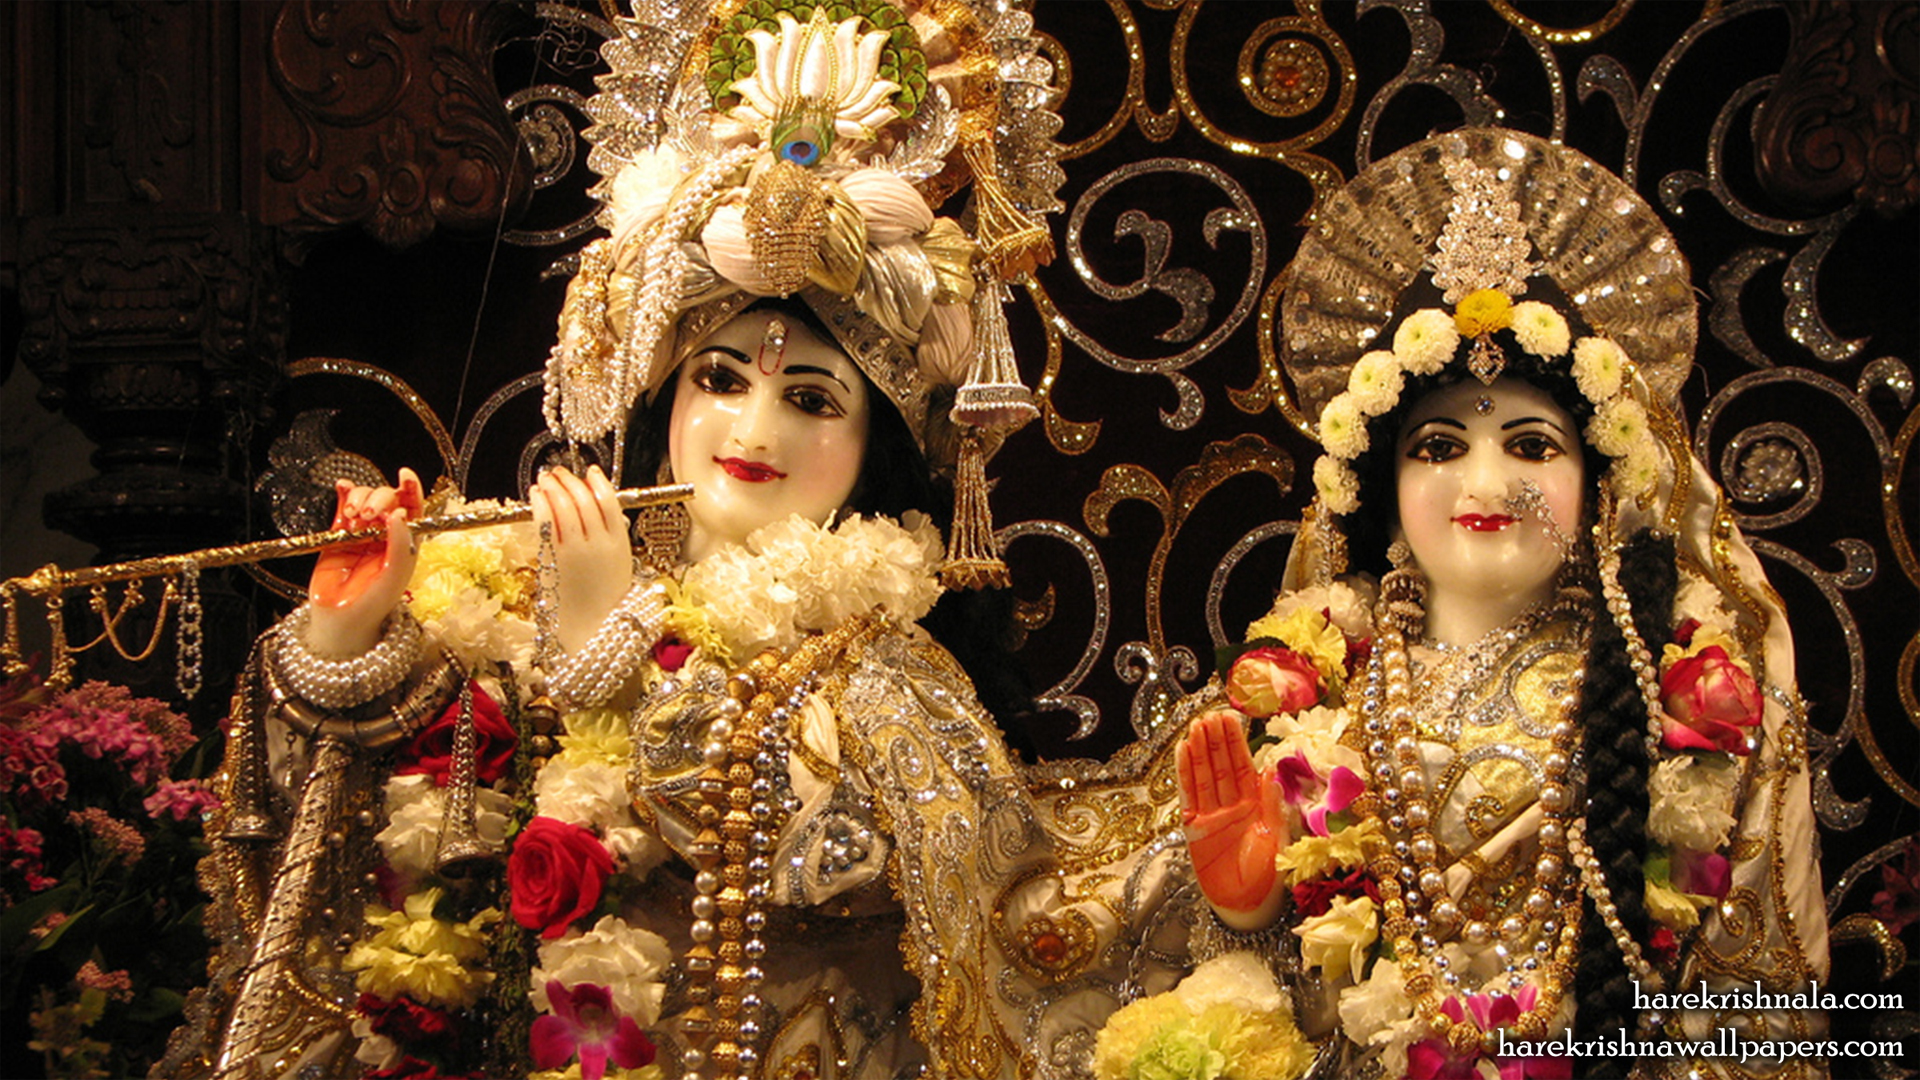 Sri Sri Rukmini Dwarkadhish Close up Wallpaper (006) Size 1920x1080 Download